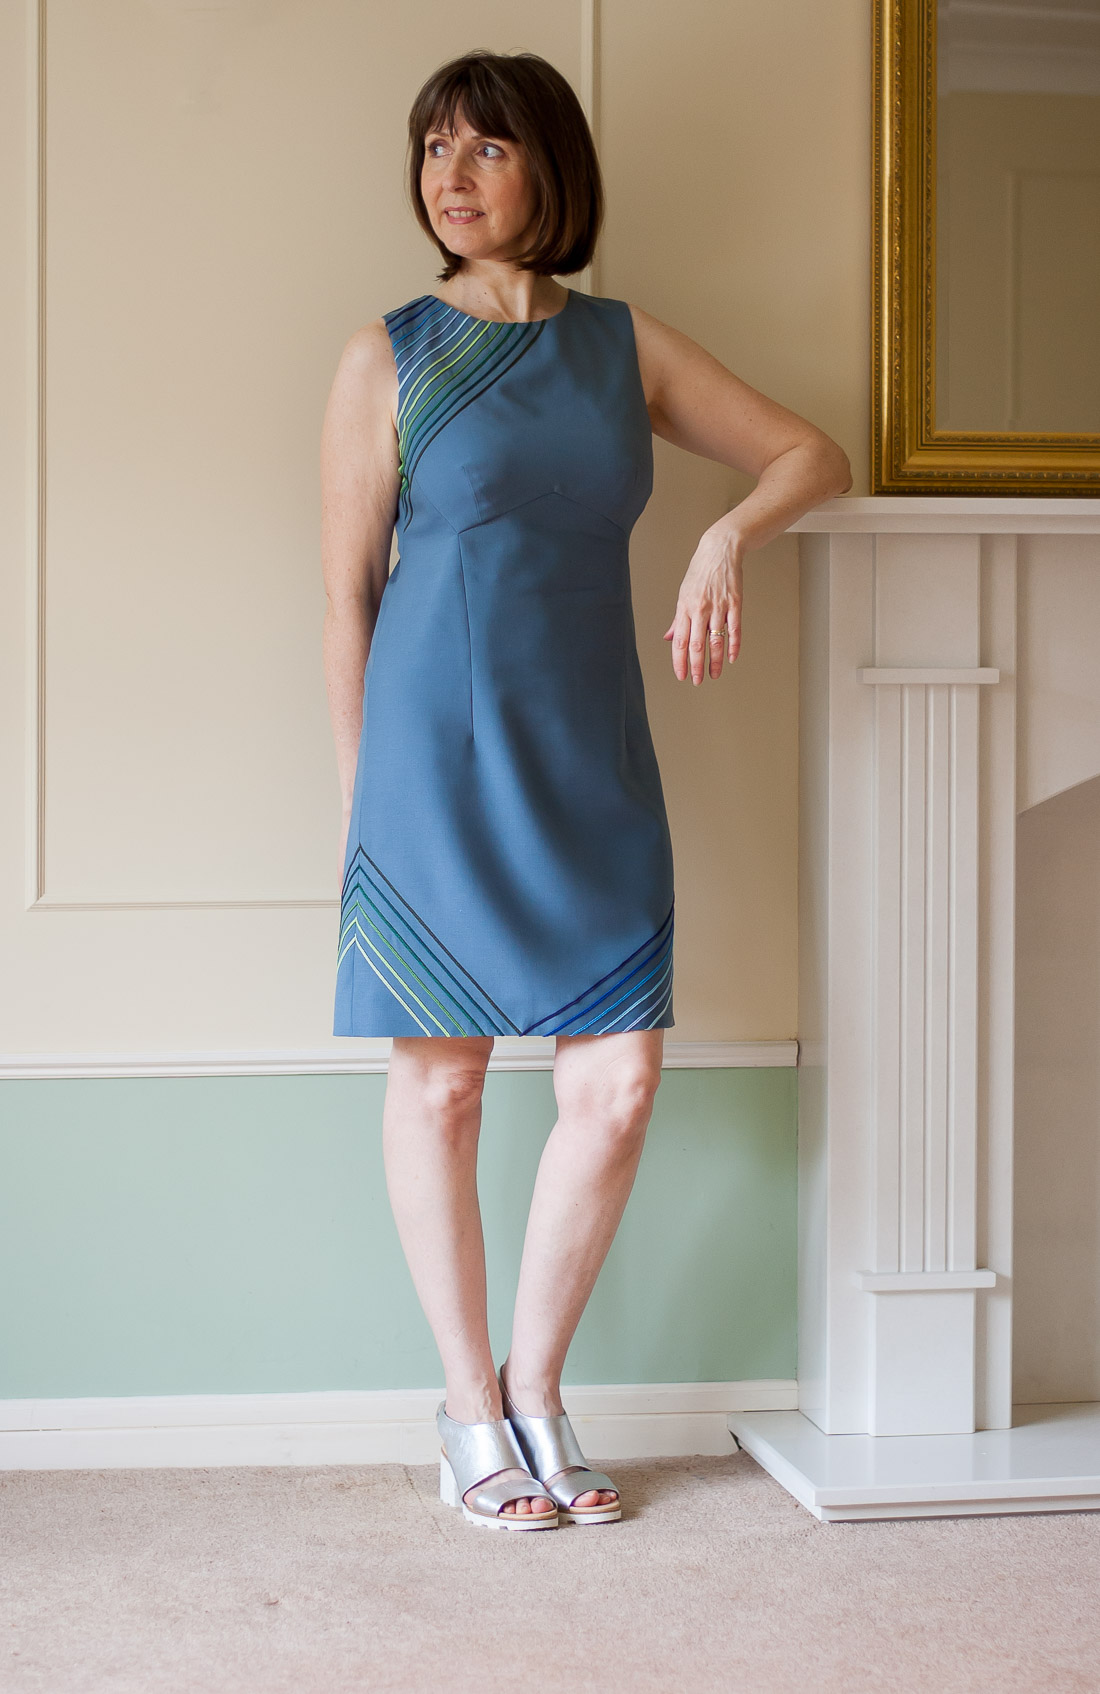 DIY 60s style dress using Vogue 1809